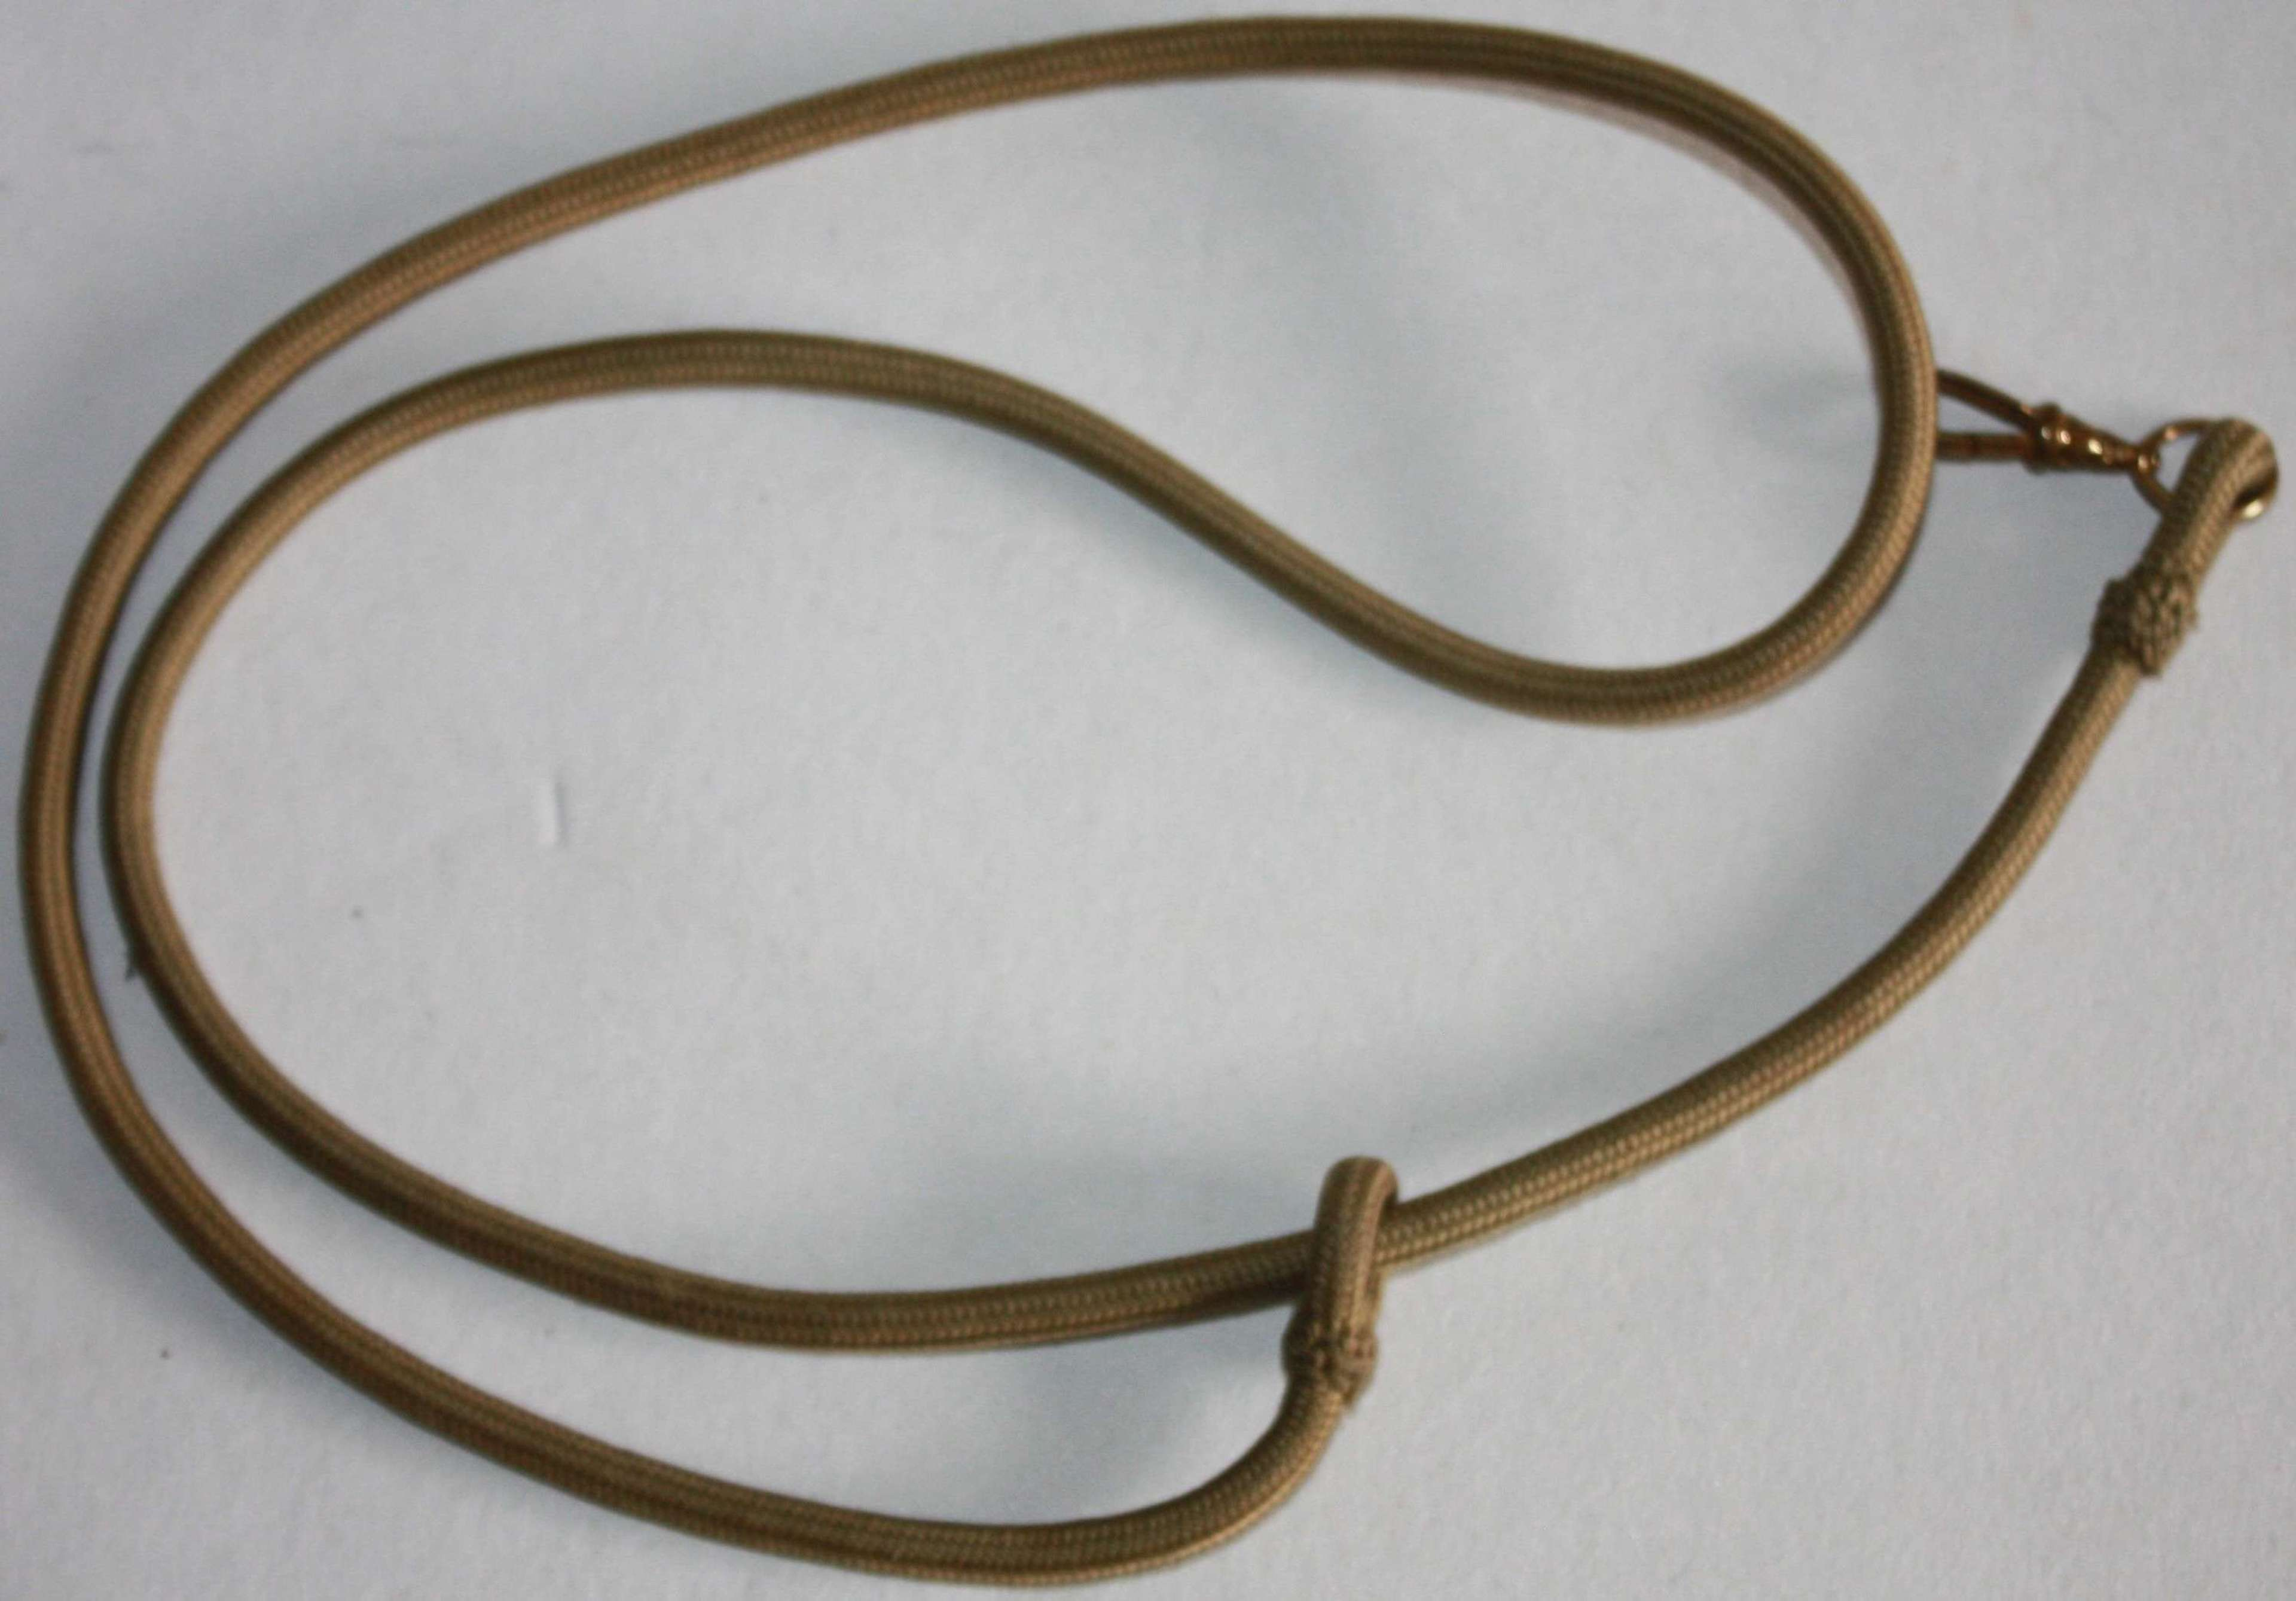 A GOOD WWI / WWII OFFICERS WHISTLE LANYARD